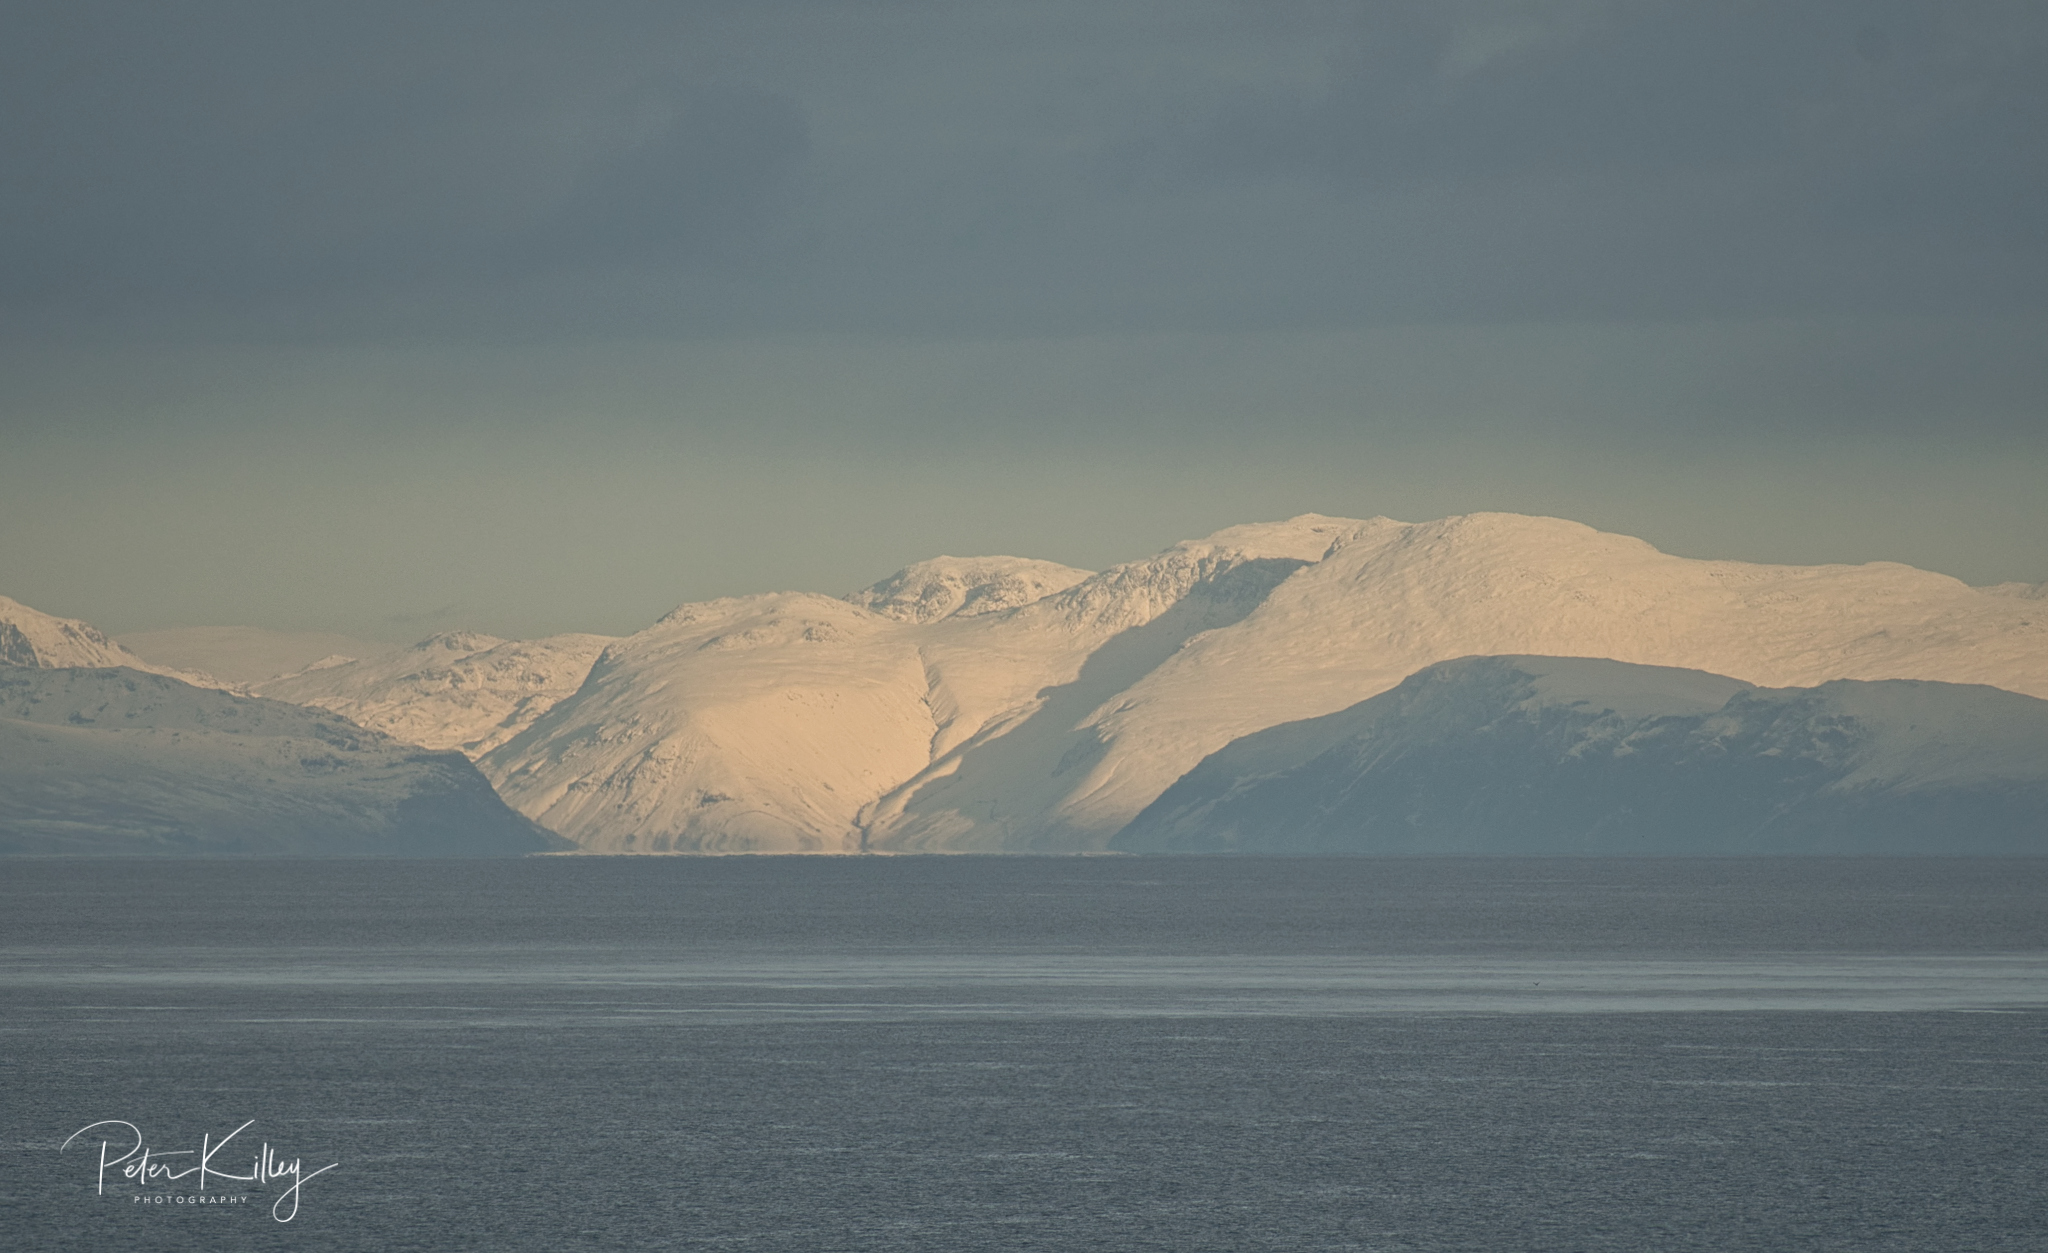 Cumbrian Mountains from IOM - © Peter Killey - www.manxscenes.com